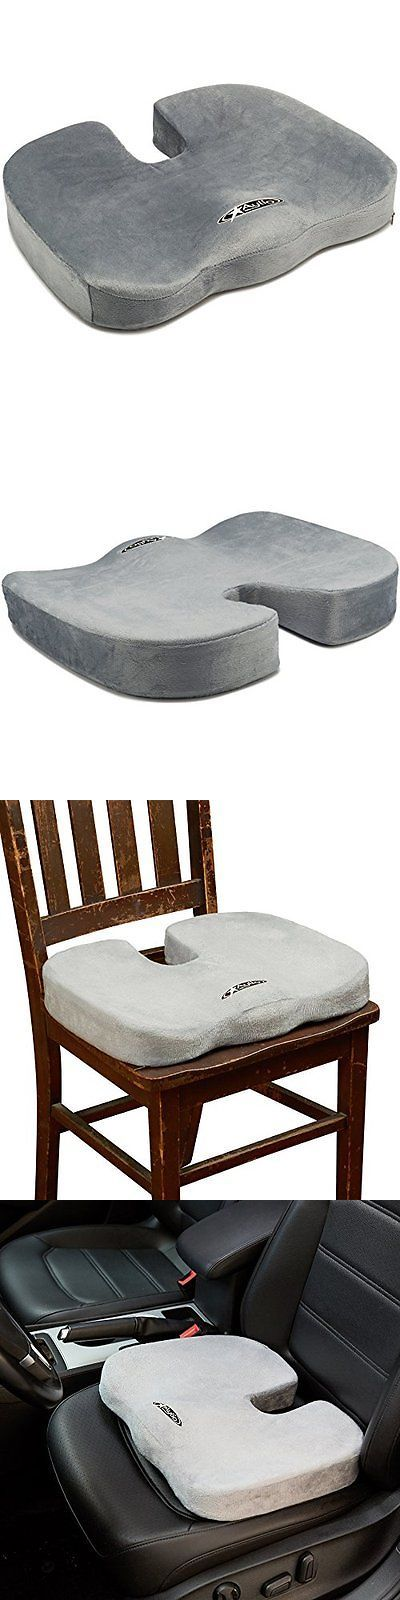 Seat and Posture Cushions: Aylio Coccyx Seat Cushion | Back Support, Tailbone And Sciatica Pain Relief,... -> BUY IT NOW ONLY: $50.78 on eBay!